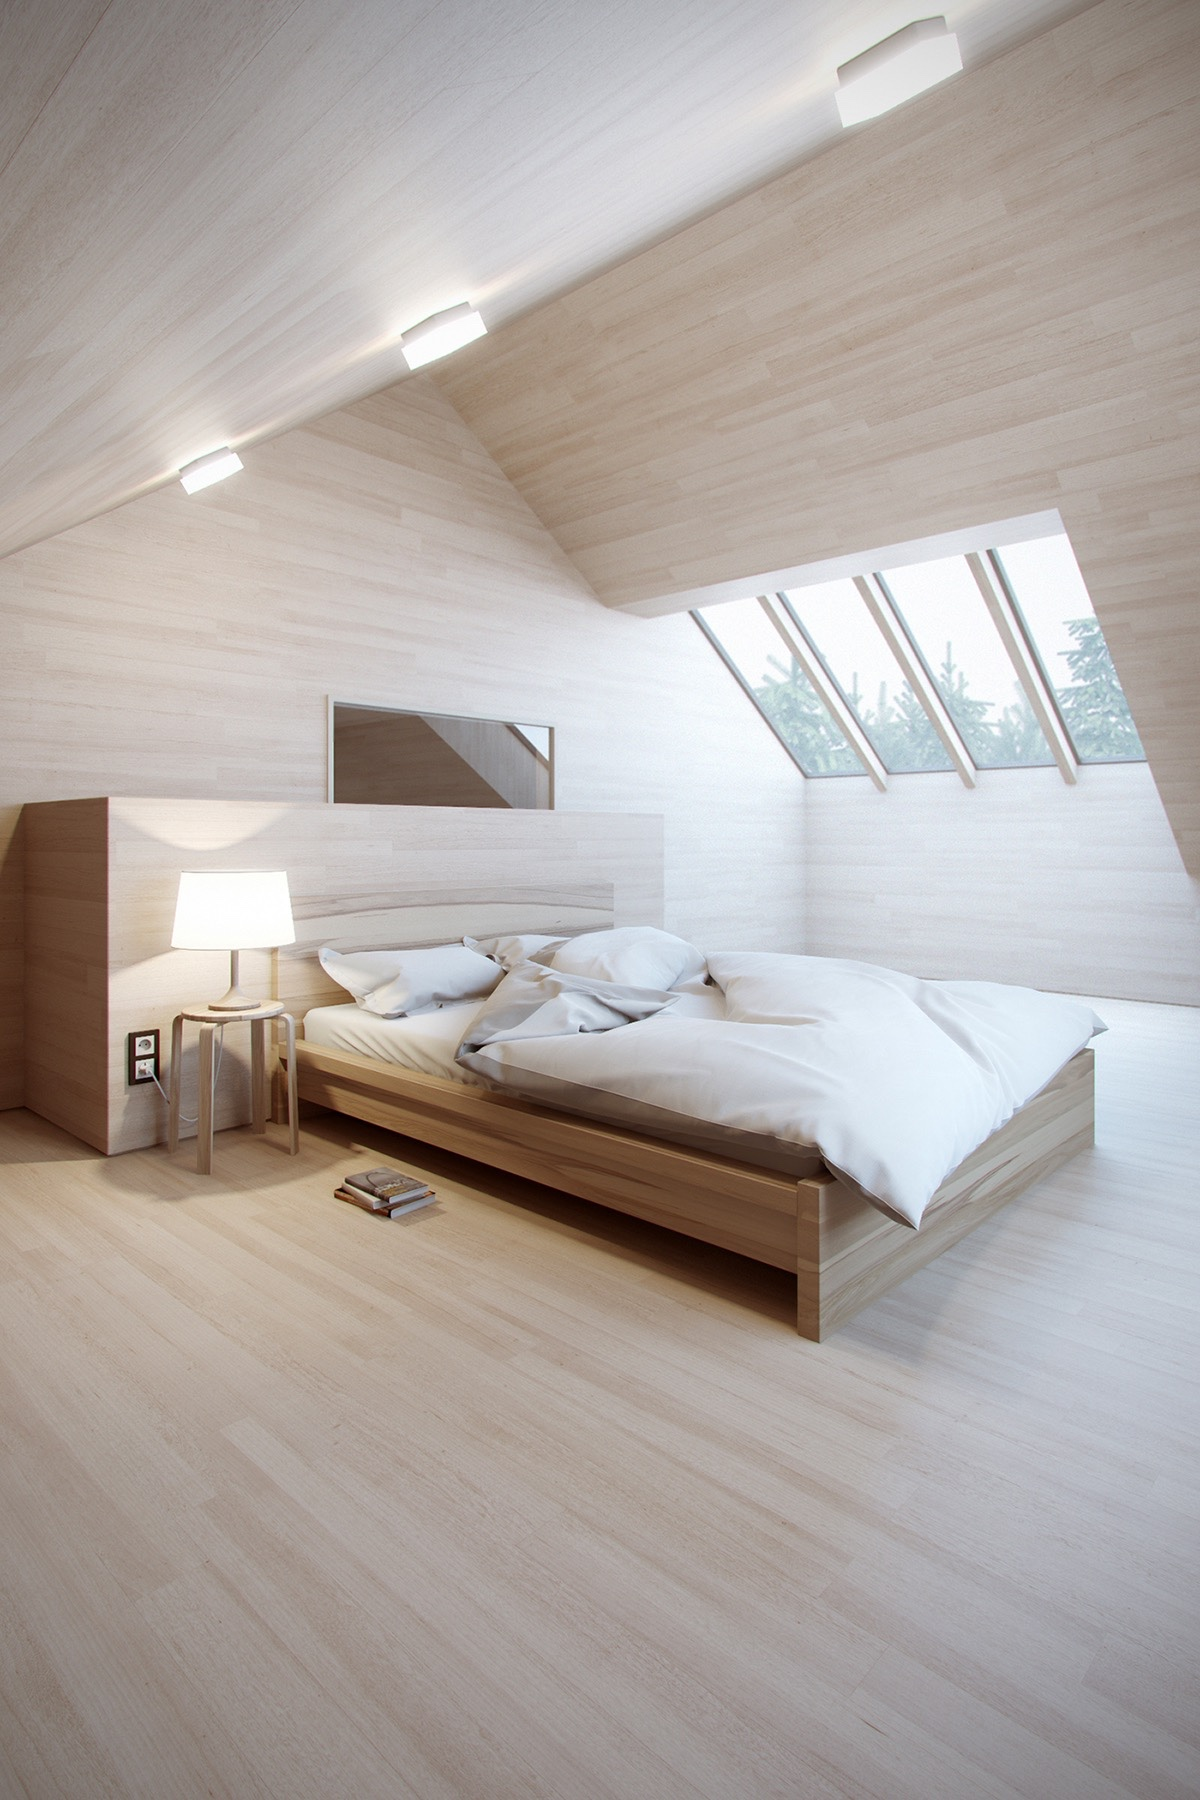 attic bedroom ideas 25 amazing attic bedrooms that you would absolutely enjoy 10132